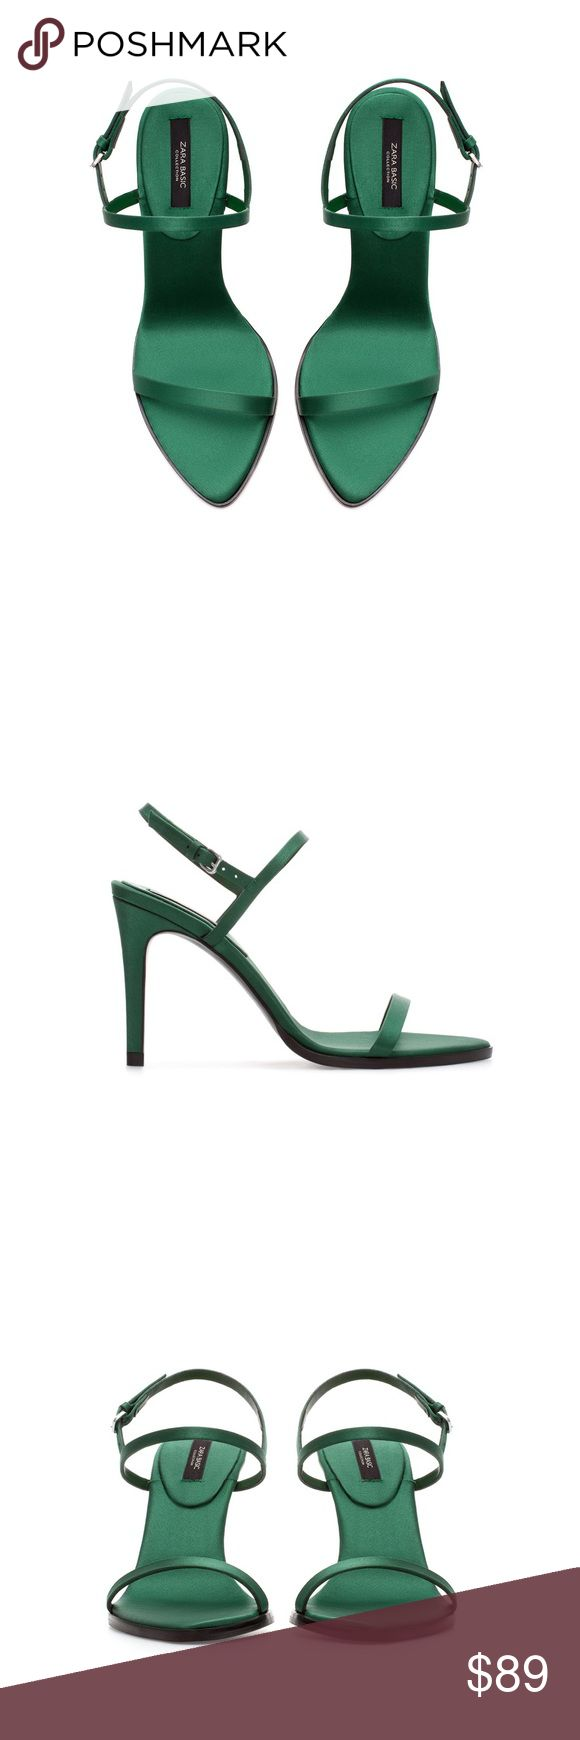 """NWT! Elegant ZARA Satin Strappy Heels Brand new with tags, never worn. Emerald green color. Heel height: 3.94"""". ZARA Eur 37/US 6.5. Sold out everywhere! Zara Shoes Heels"""